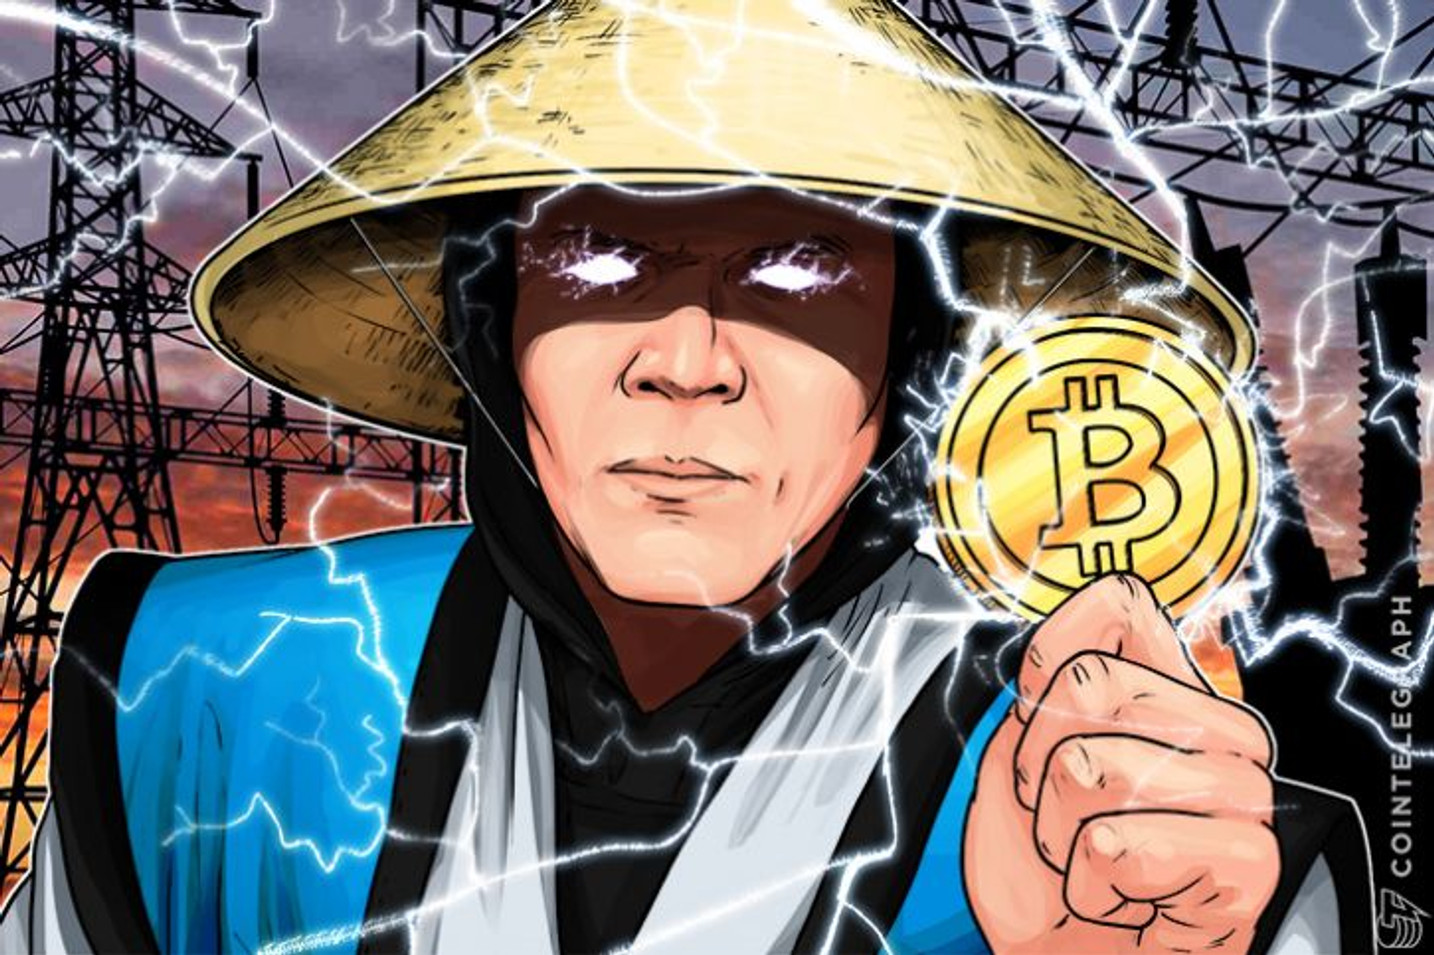 AsicBoost Exploit Claims Put Bitmain in Hot Water